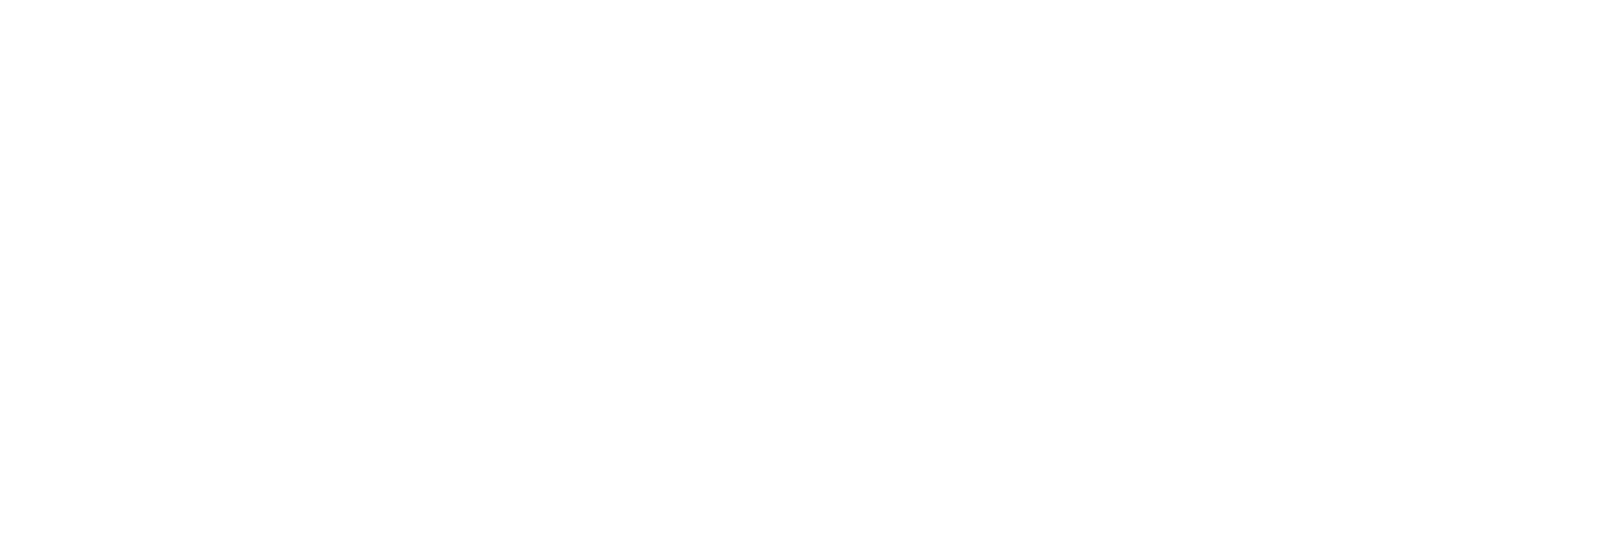 Petra Hauke, Personal Real Estate Corporation